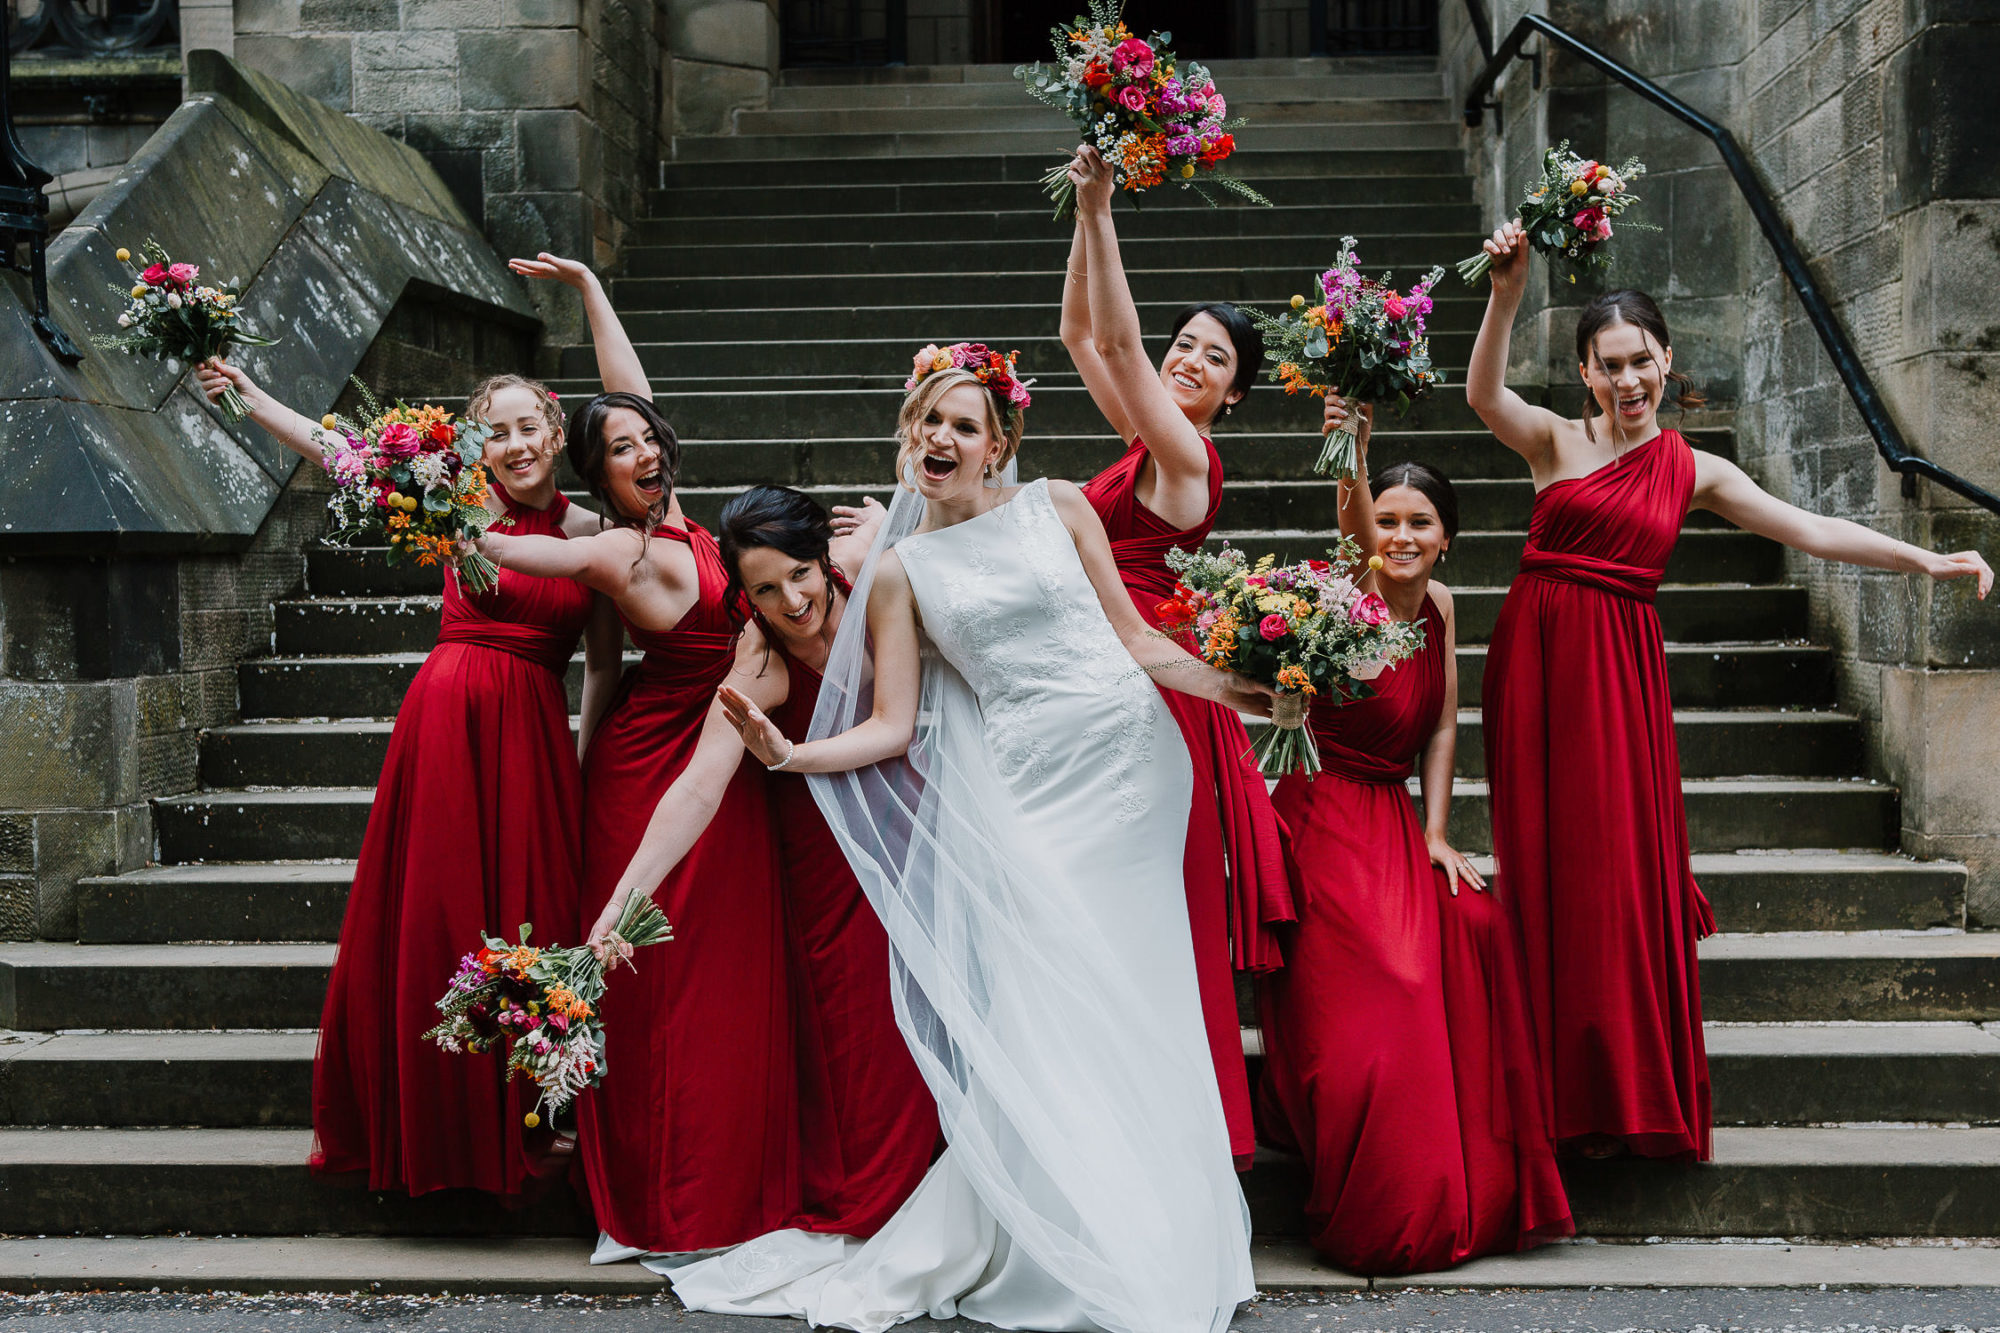 Bride and her bridesmaids striking a pose